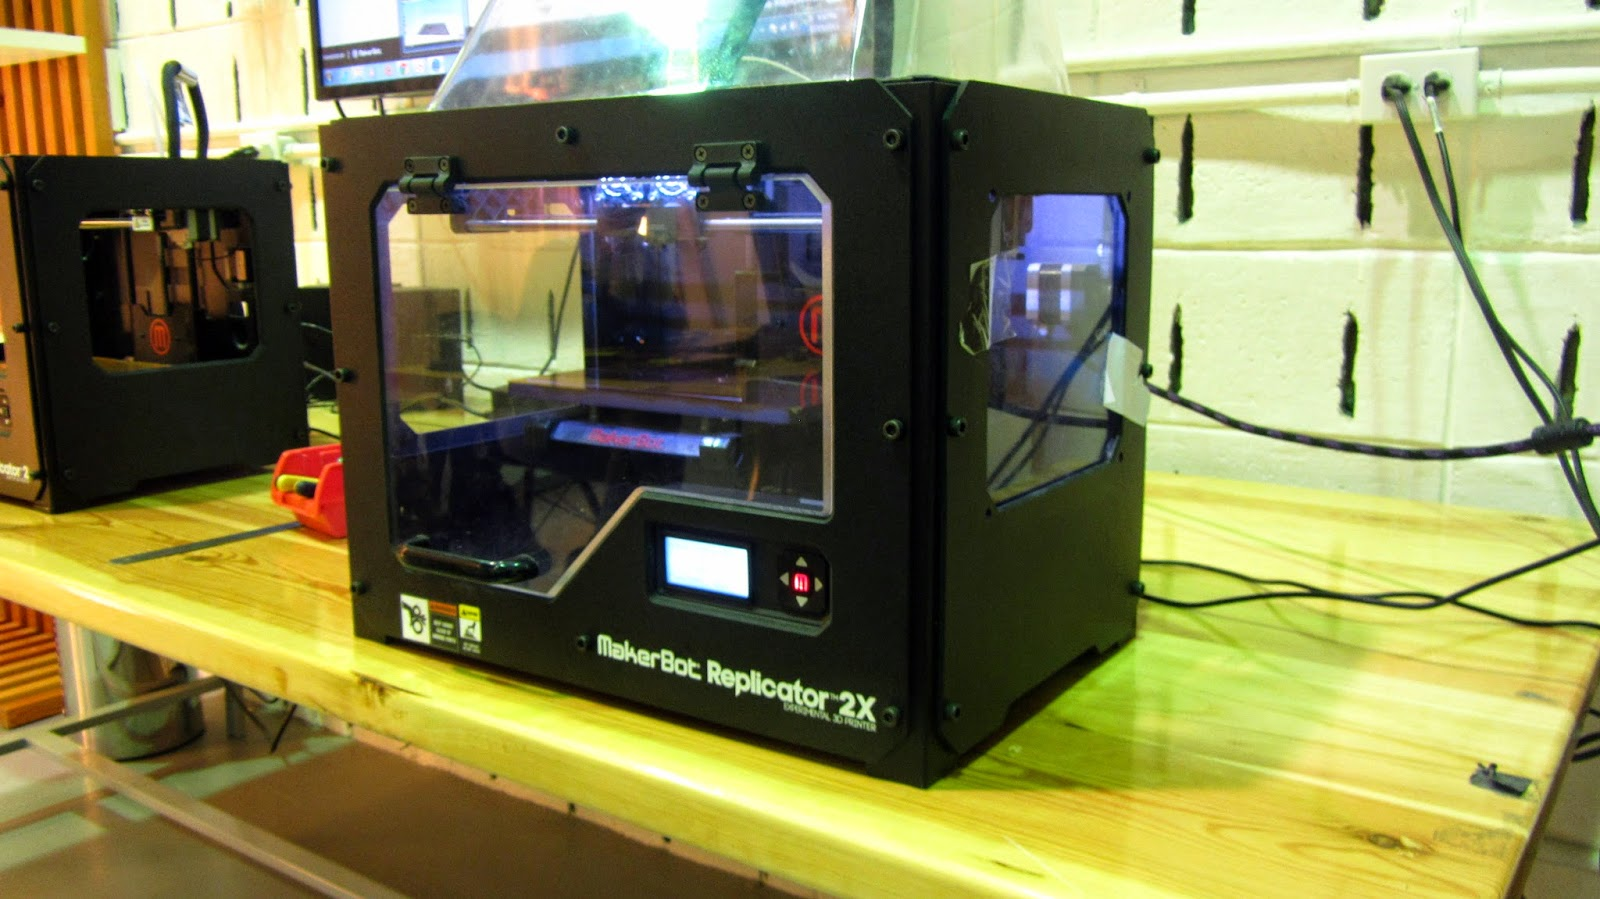 Makerbot 3D printer FABLAB KFUPM Dhahran Saudi Arabia blog